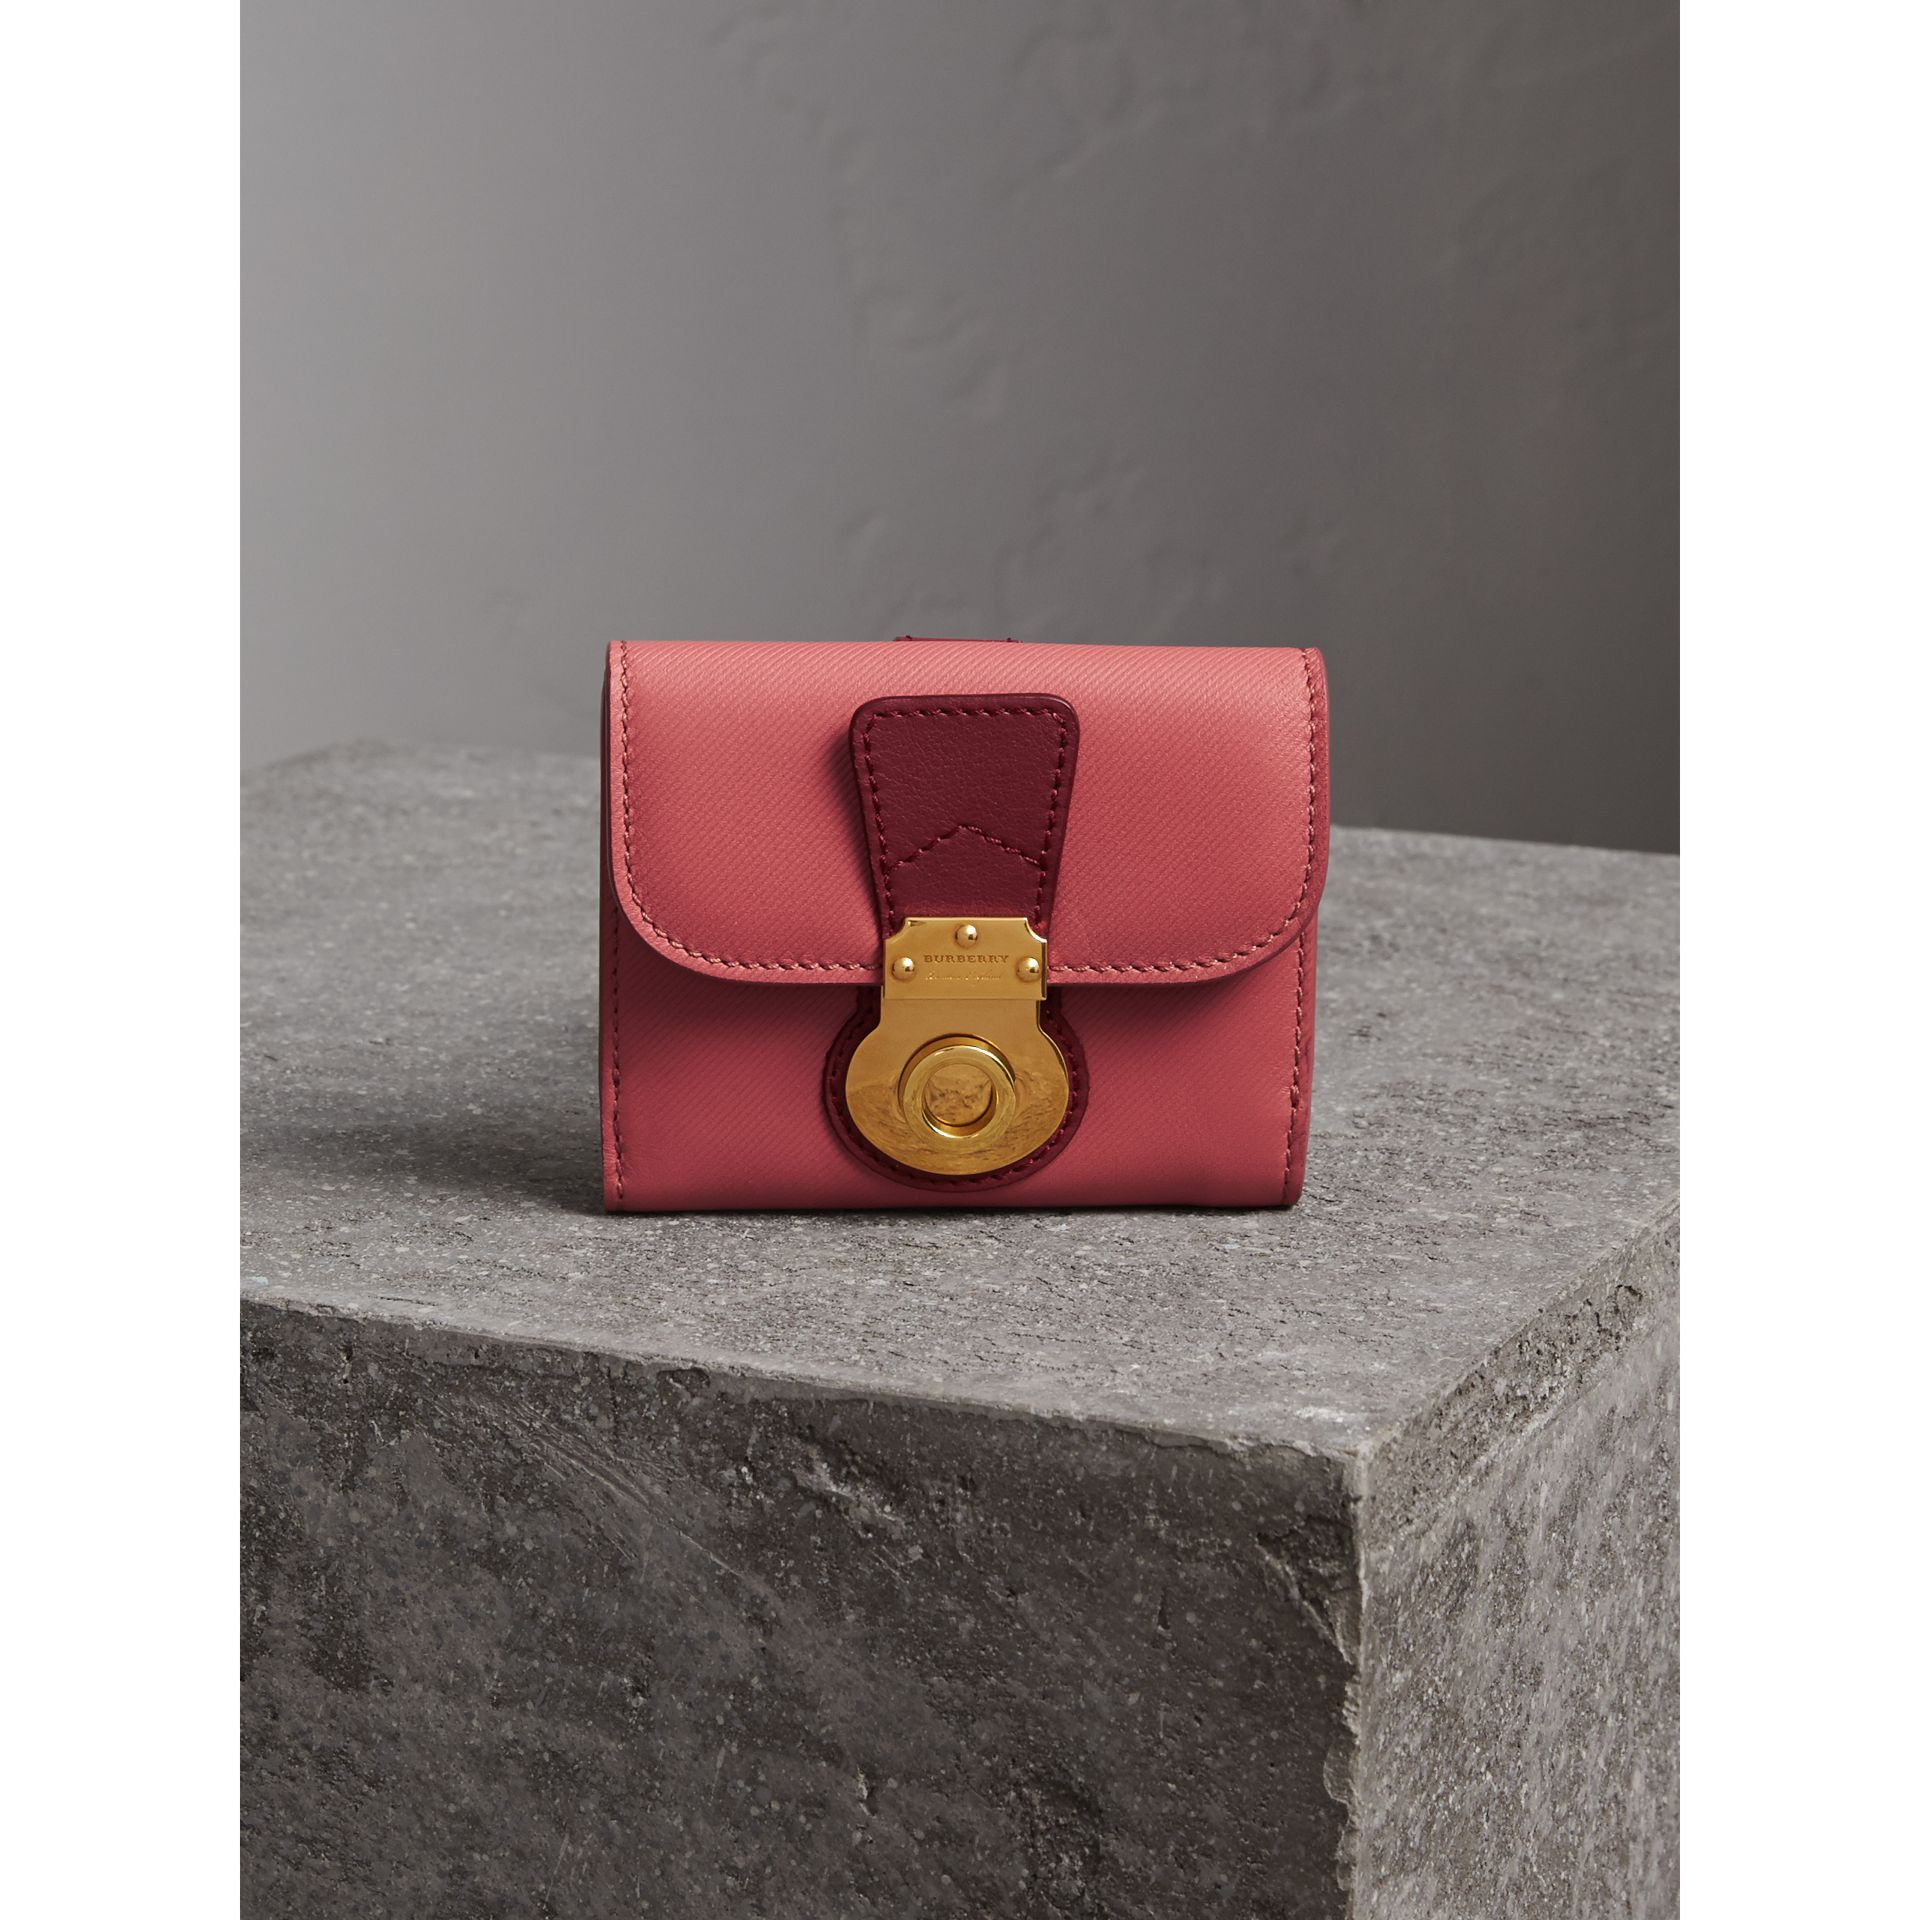 Two-tone Trench Leather Wallet in Blossom Pink/ Antique Red - Women | Burberry Canada - gallery image 6